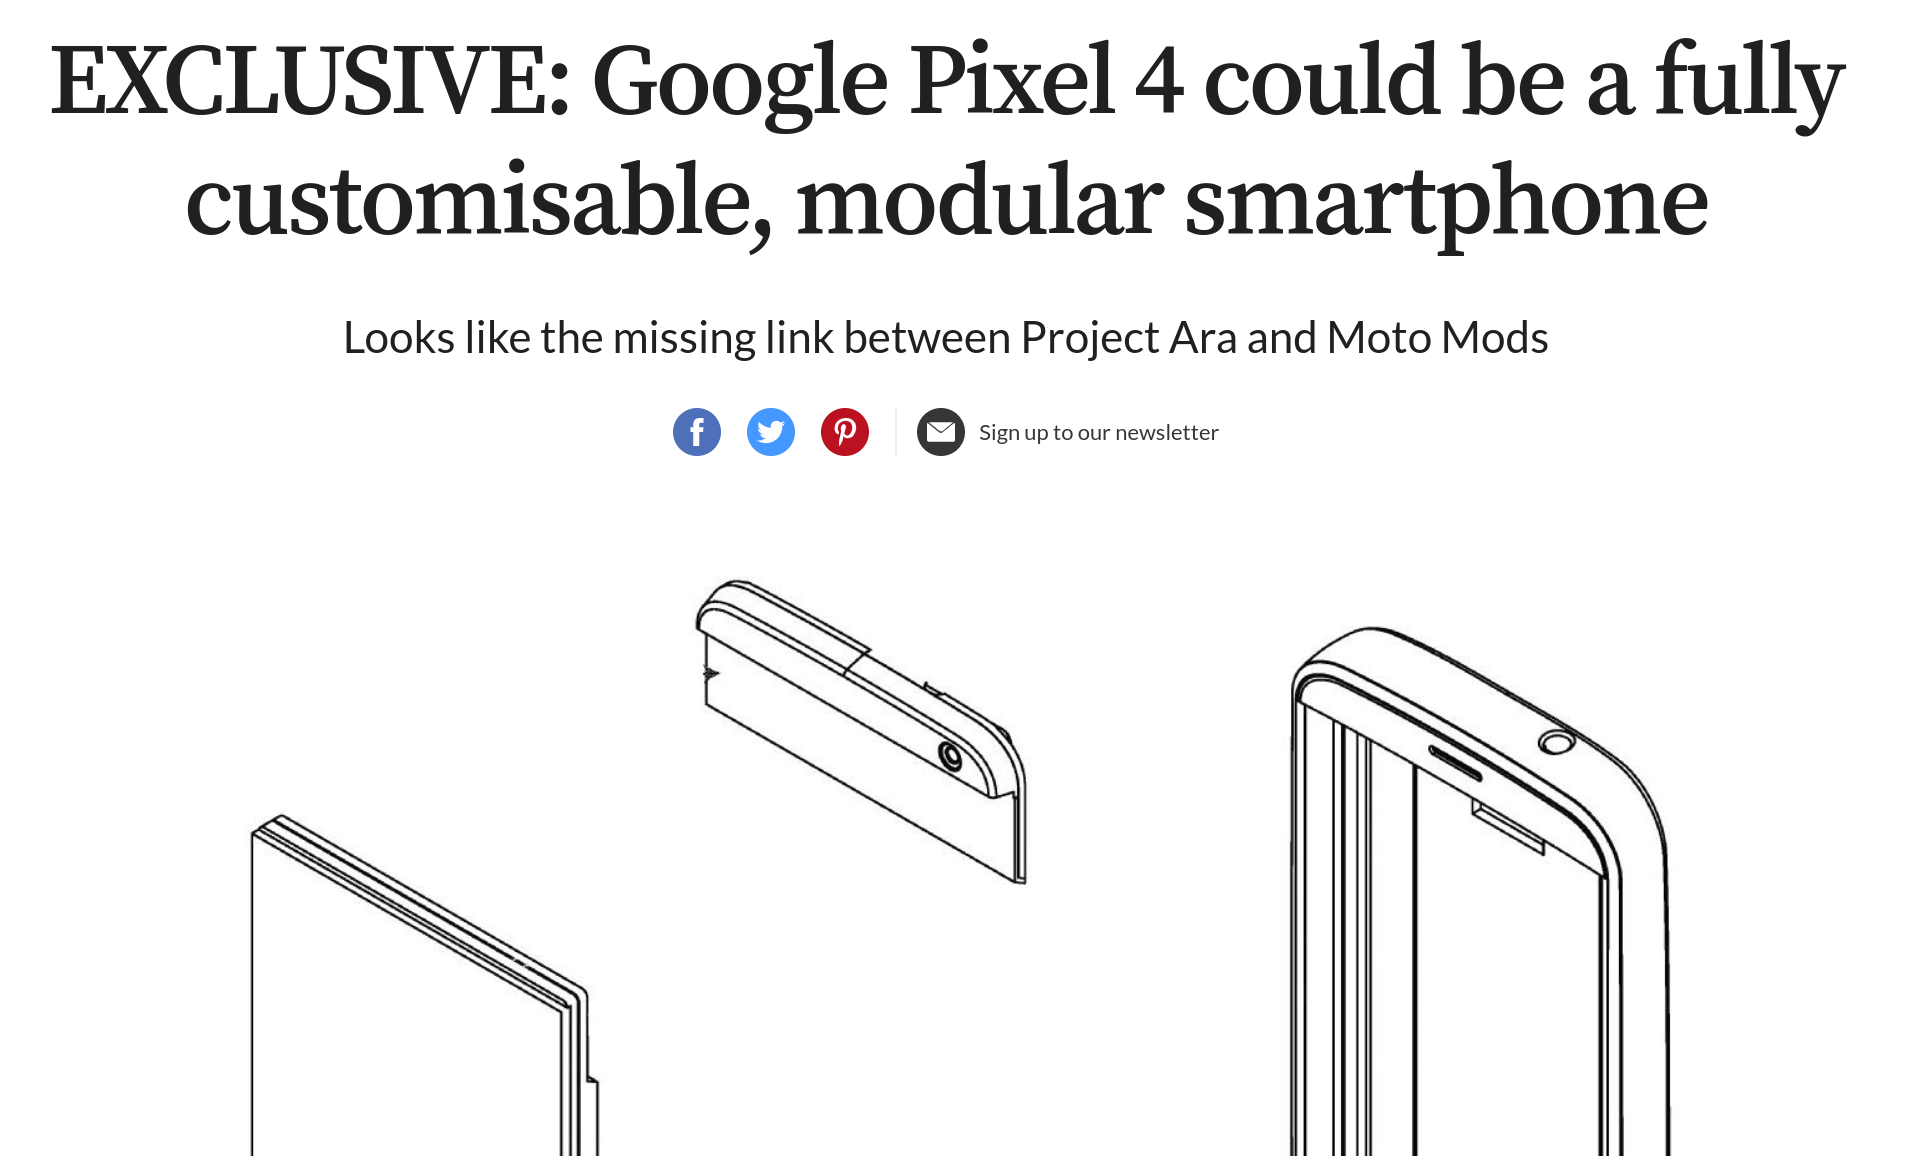 Google Pixel 4 may get dual SIM support like the iPhone